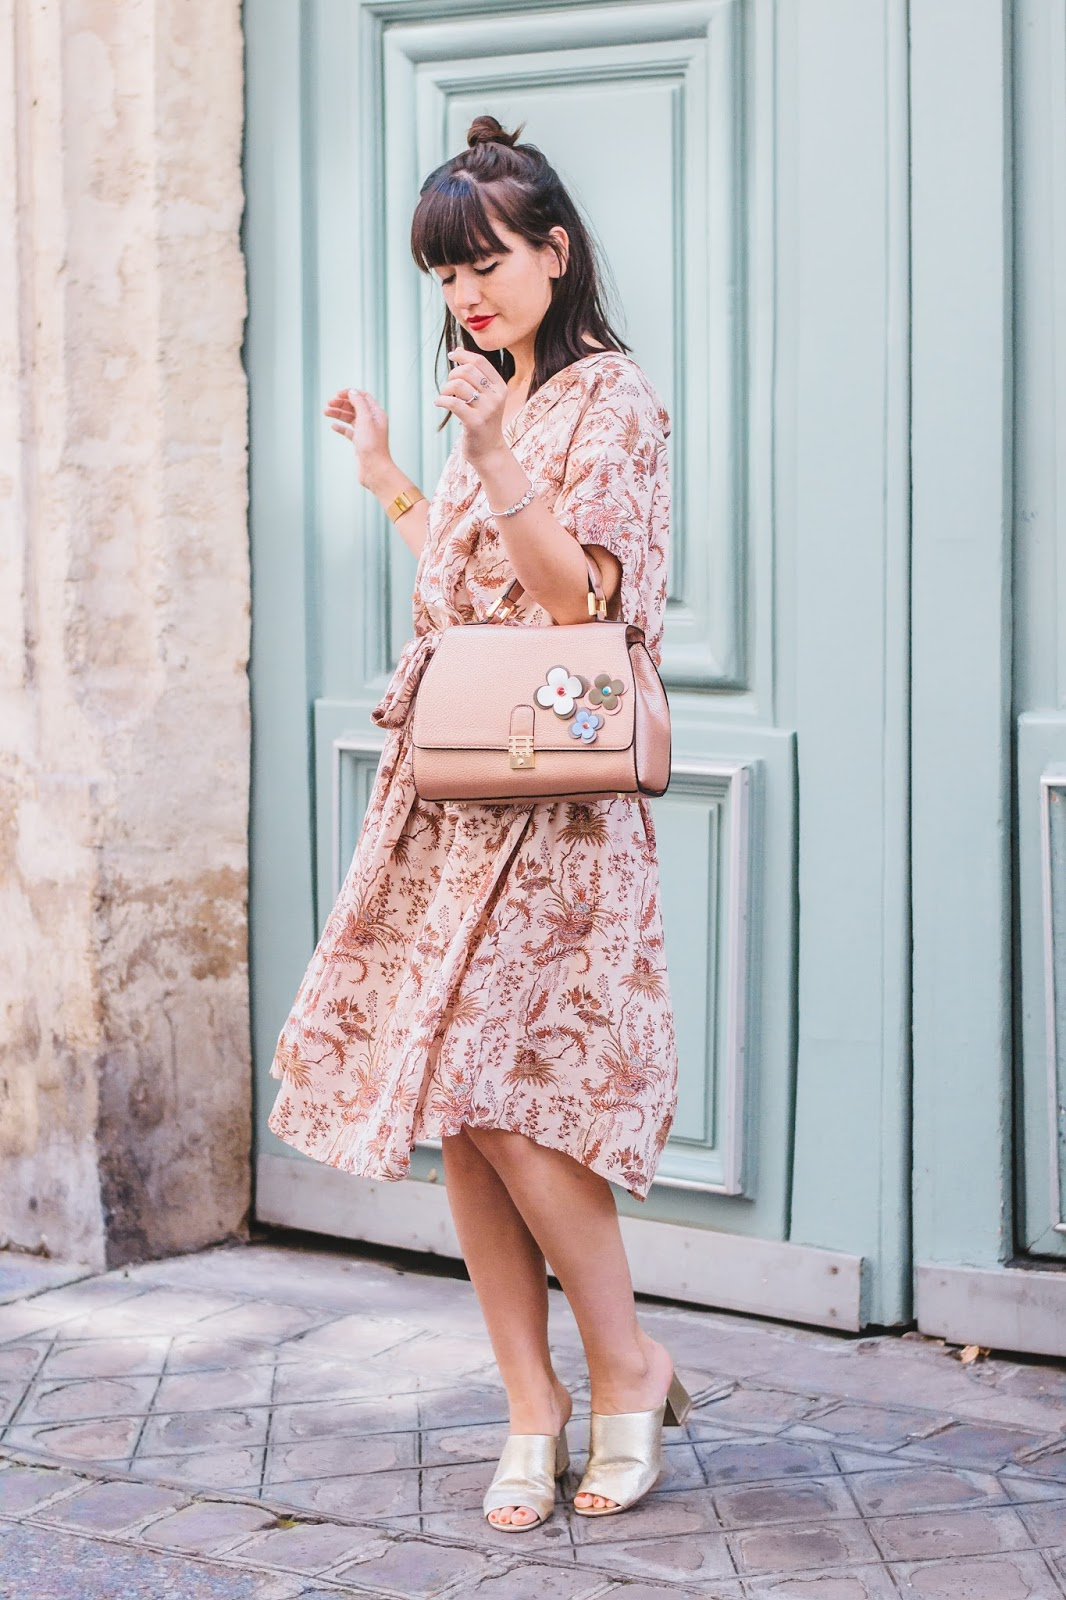 paris-fashionblogger-look-style-mode-parisianfashionblogger-streetstye-summerstyle